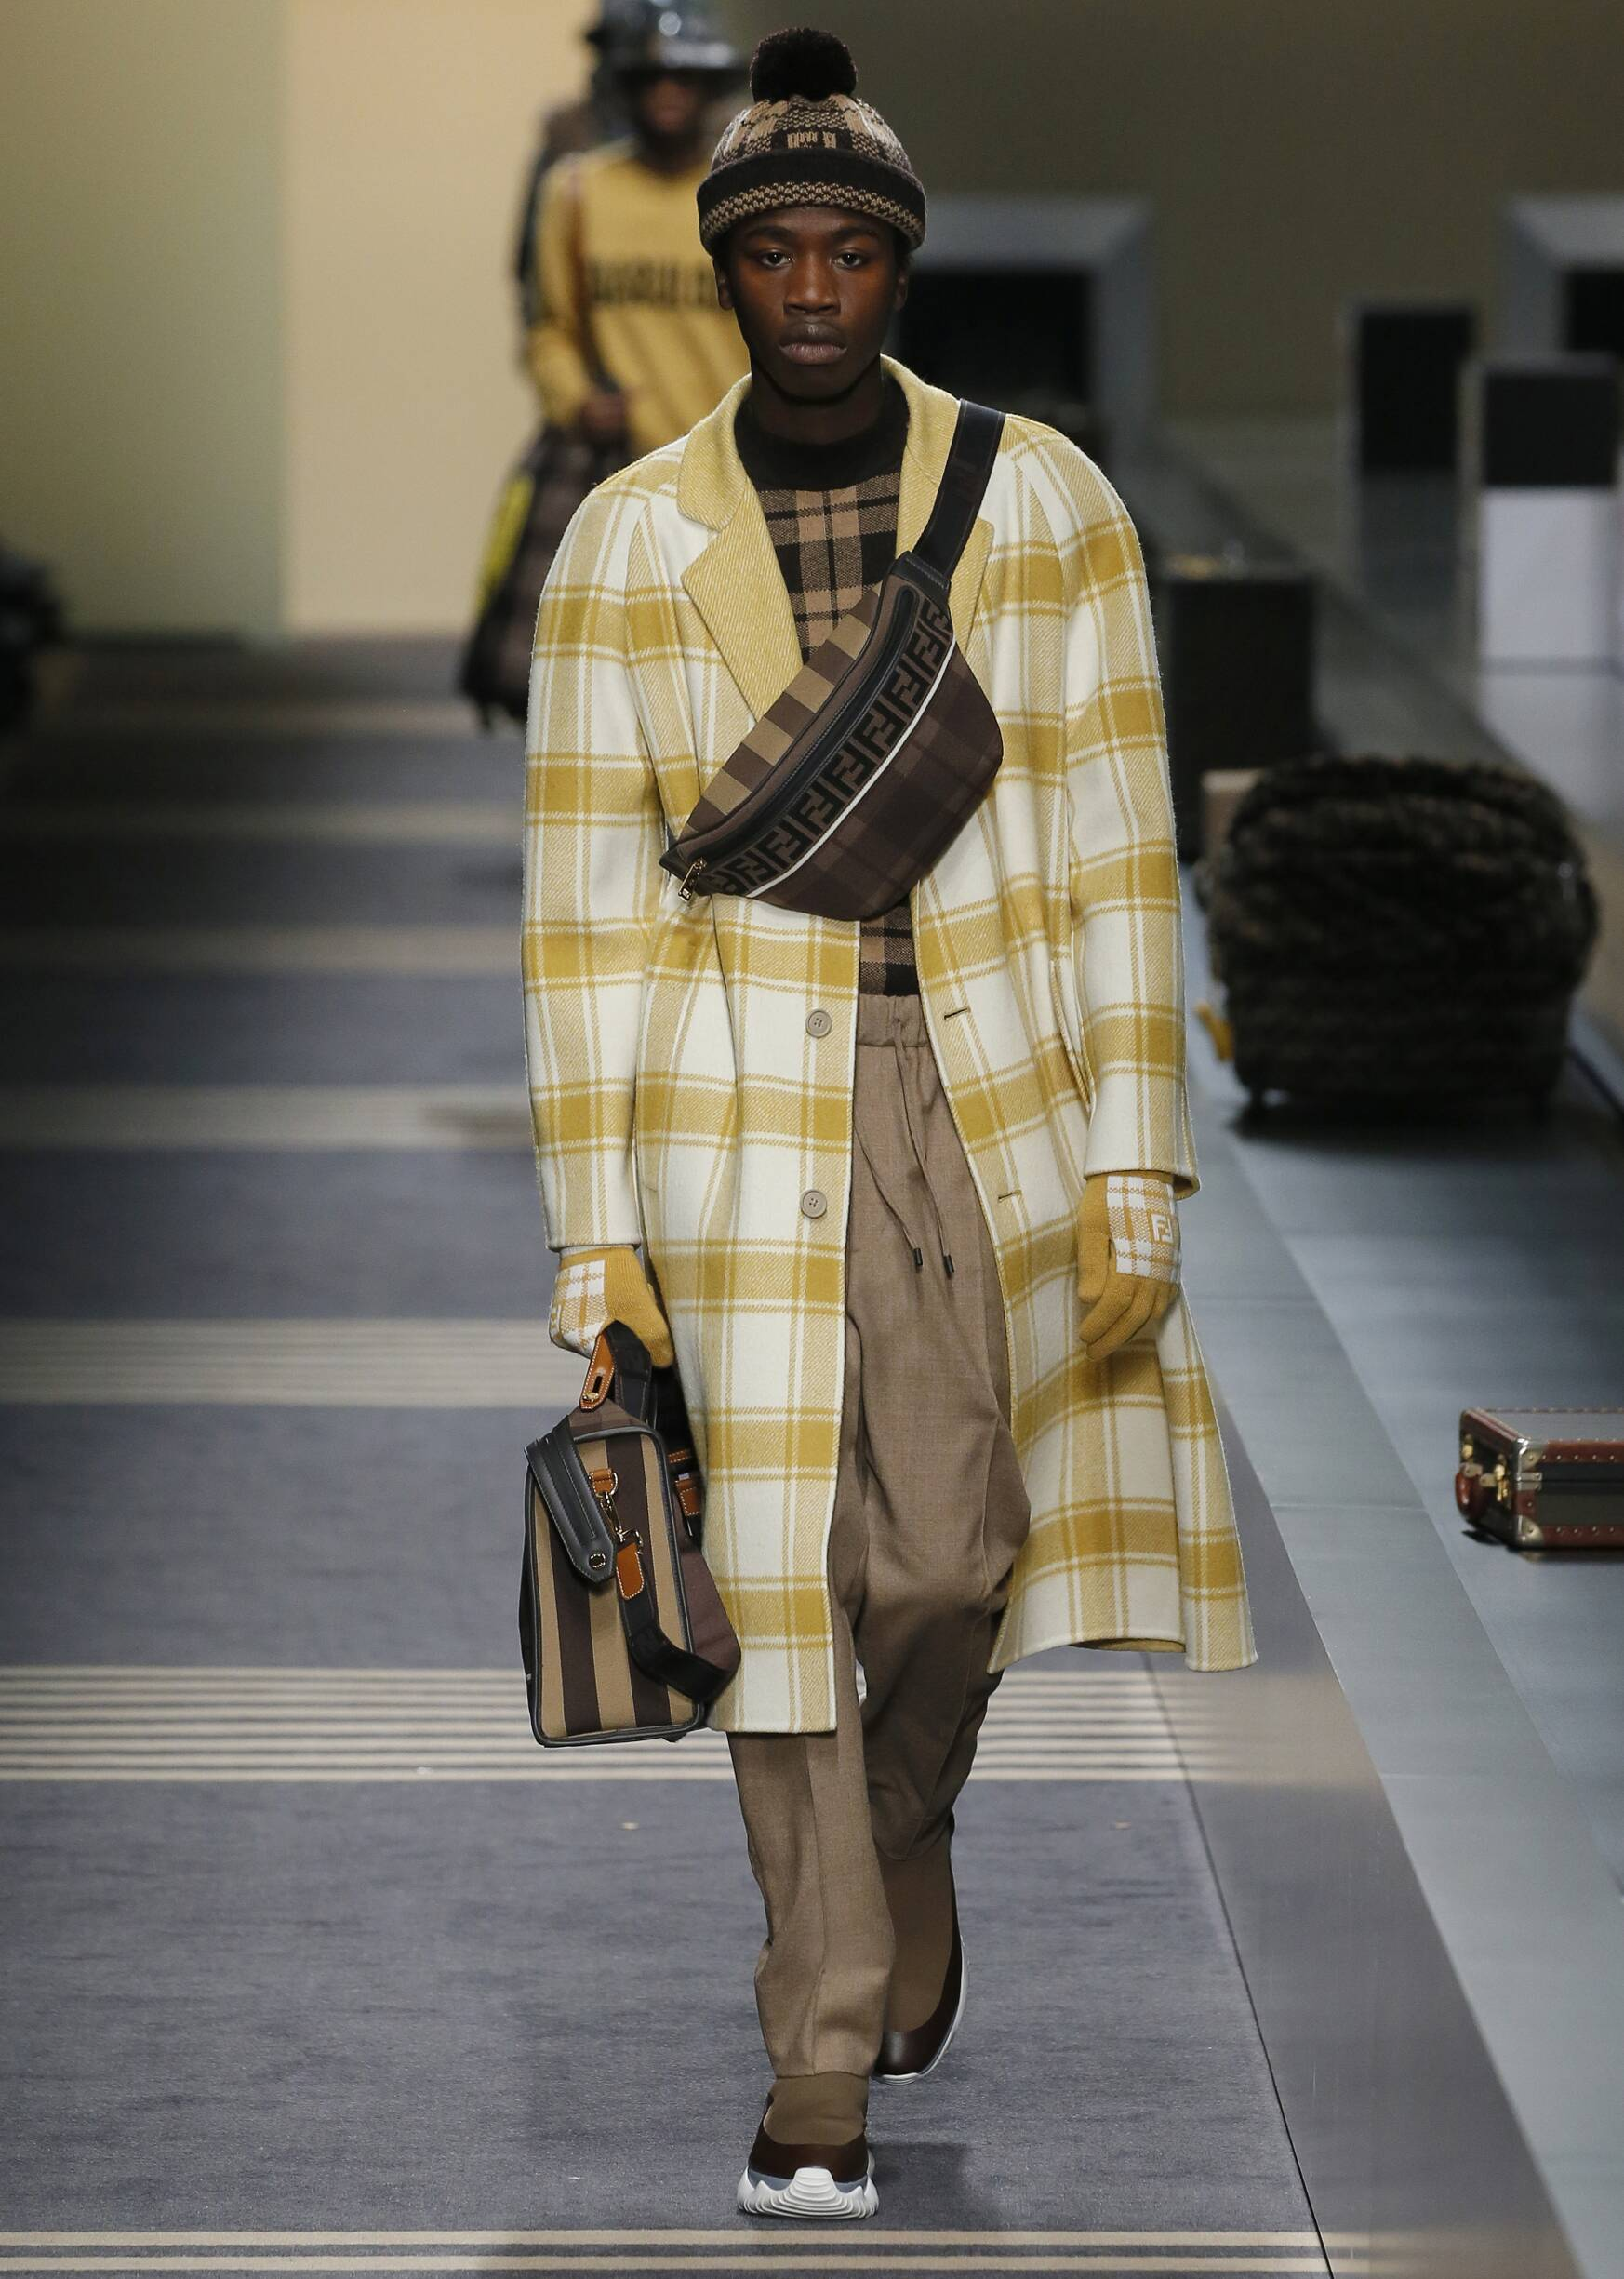 2006 fall fashion man trend Christmas Vintage Images Pixabay Download Free Pictures